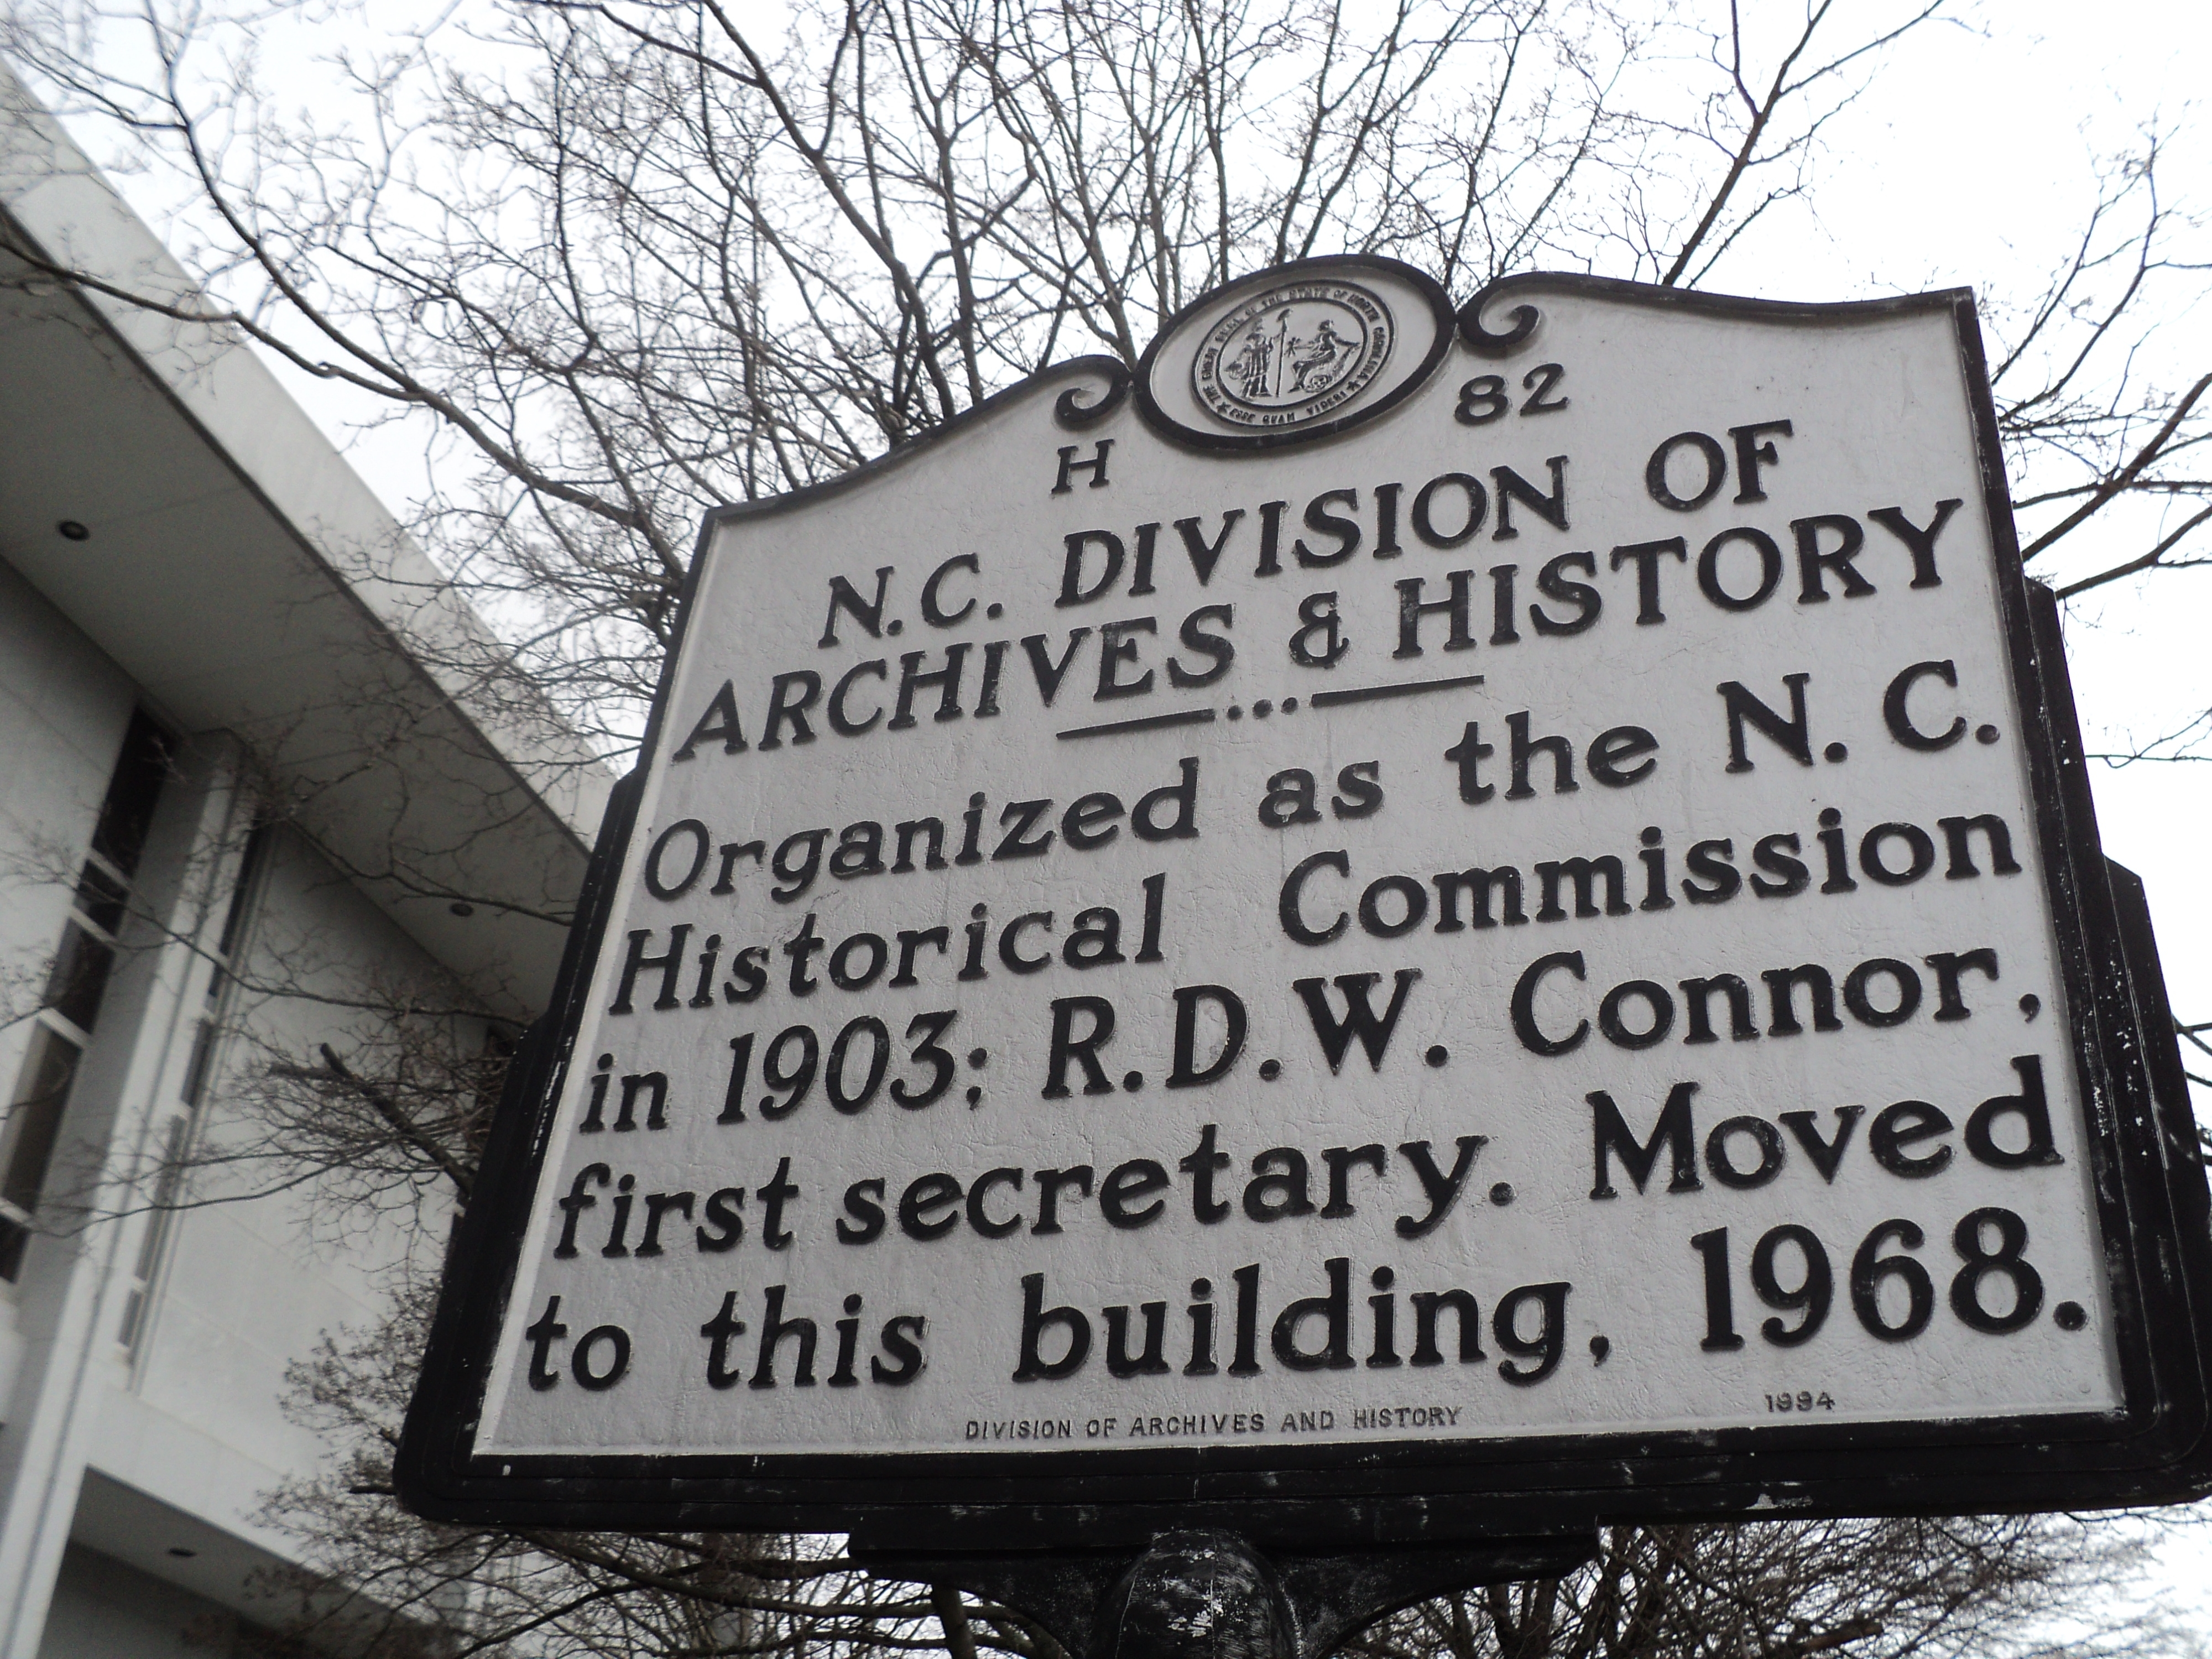 N.C. Division of Archives & History Marker